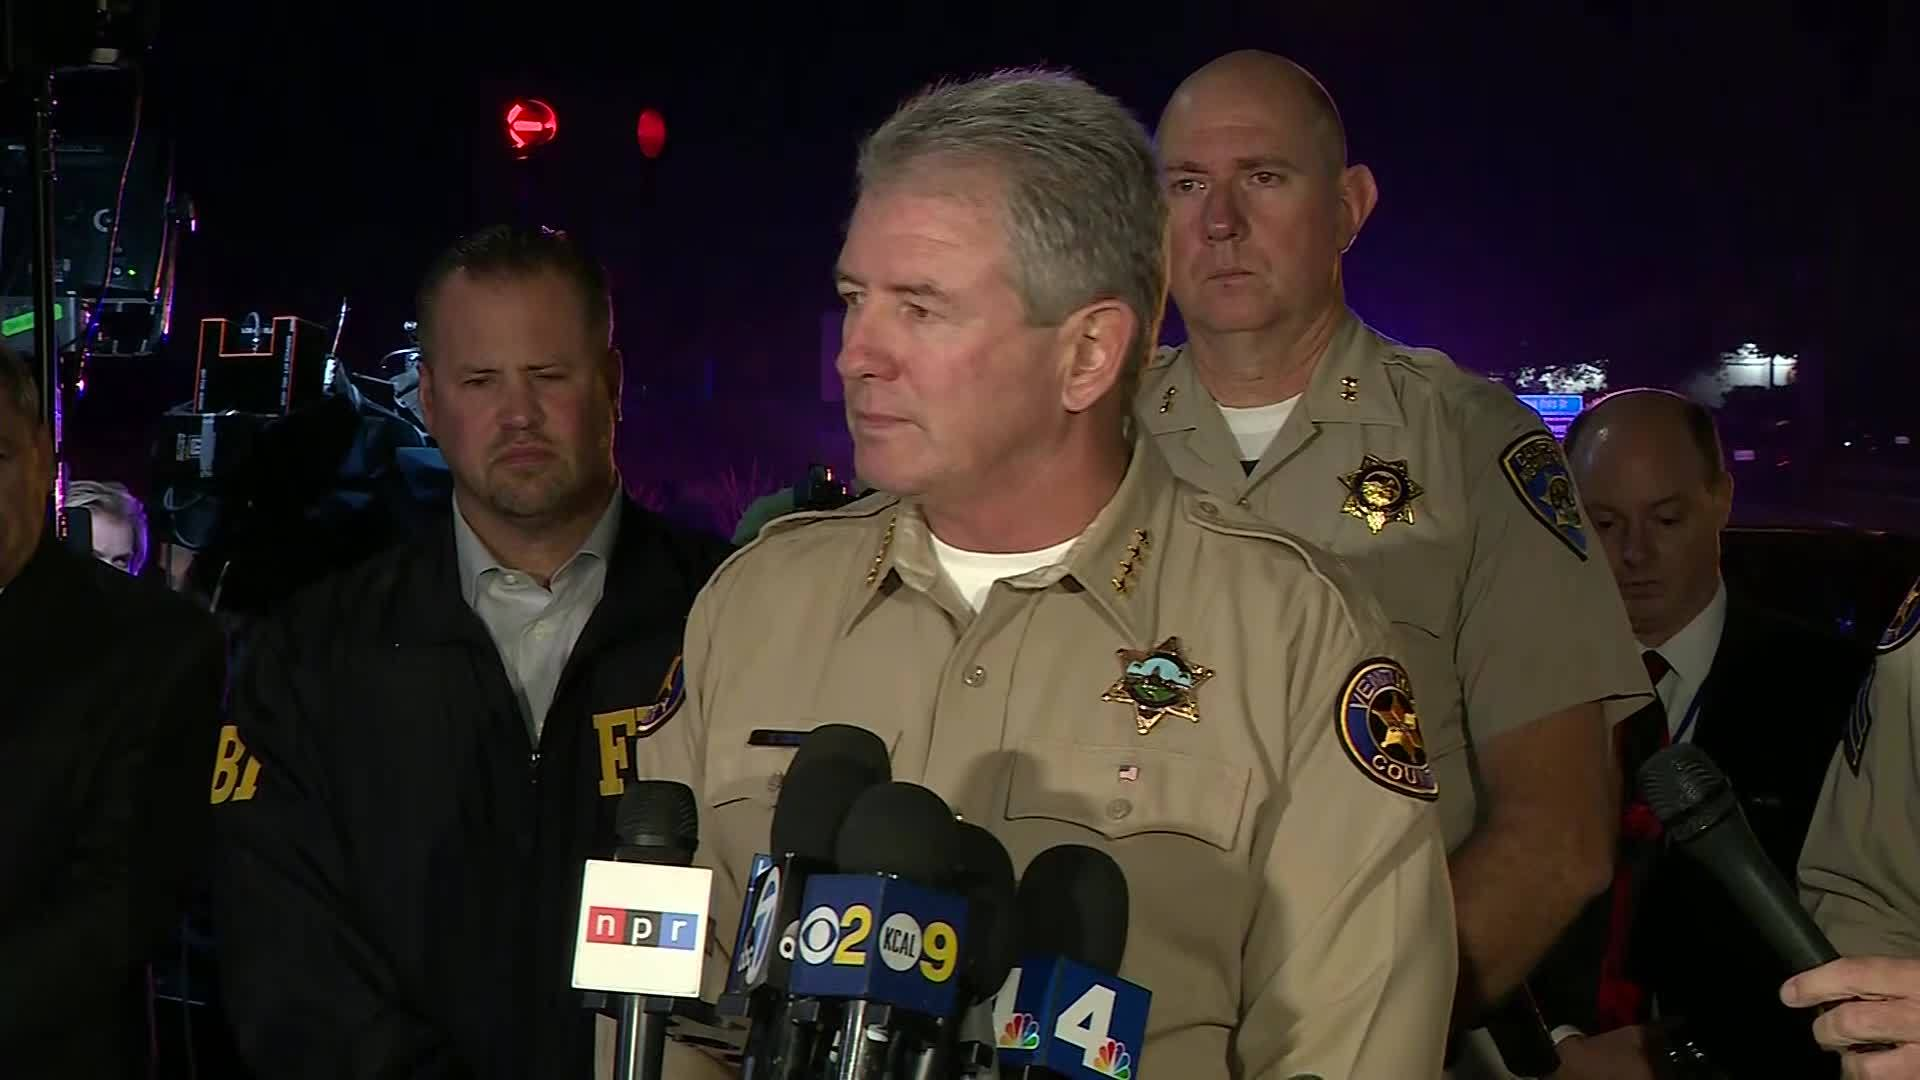 Sheriff's Sgt. killed in California bar shooting